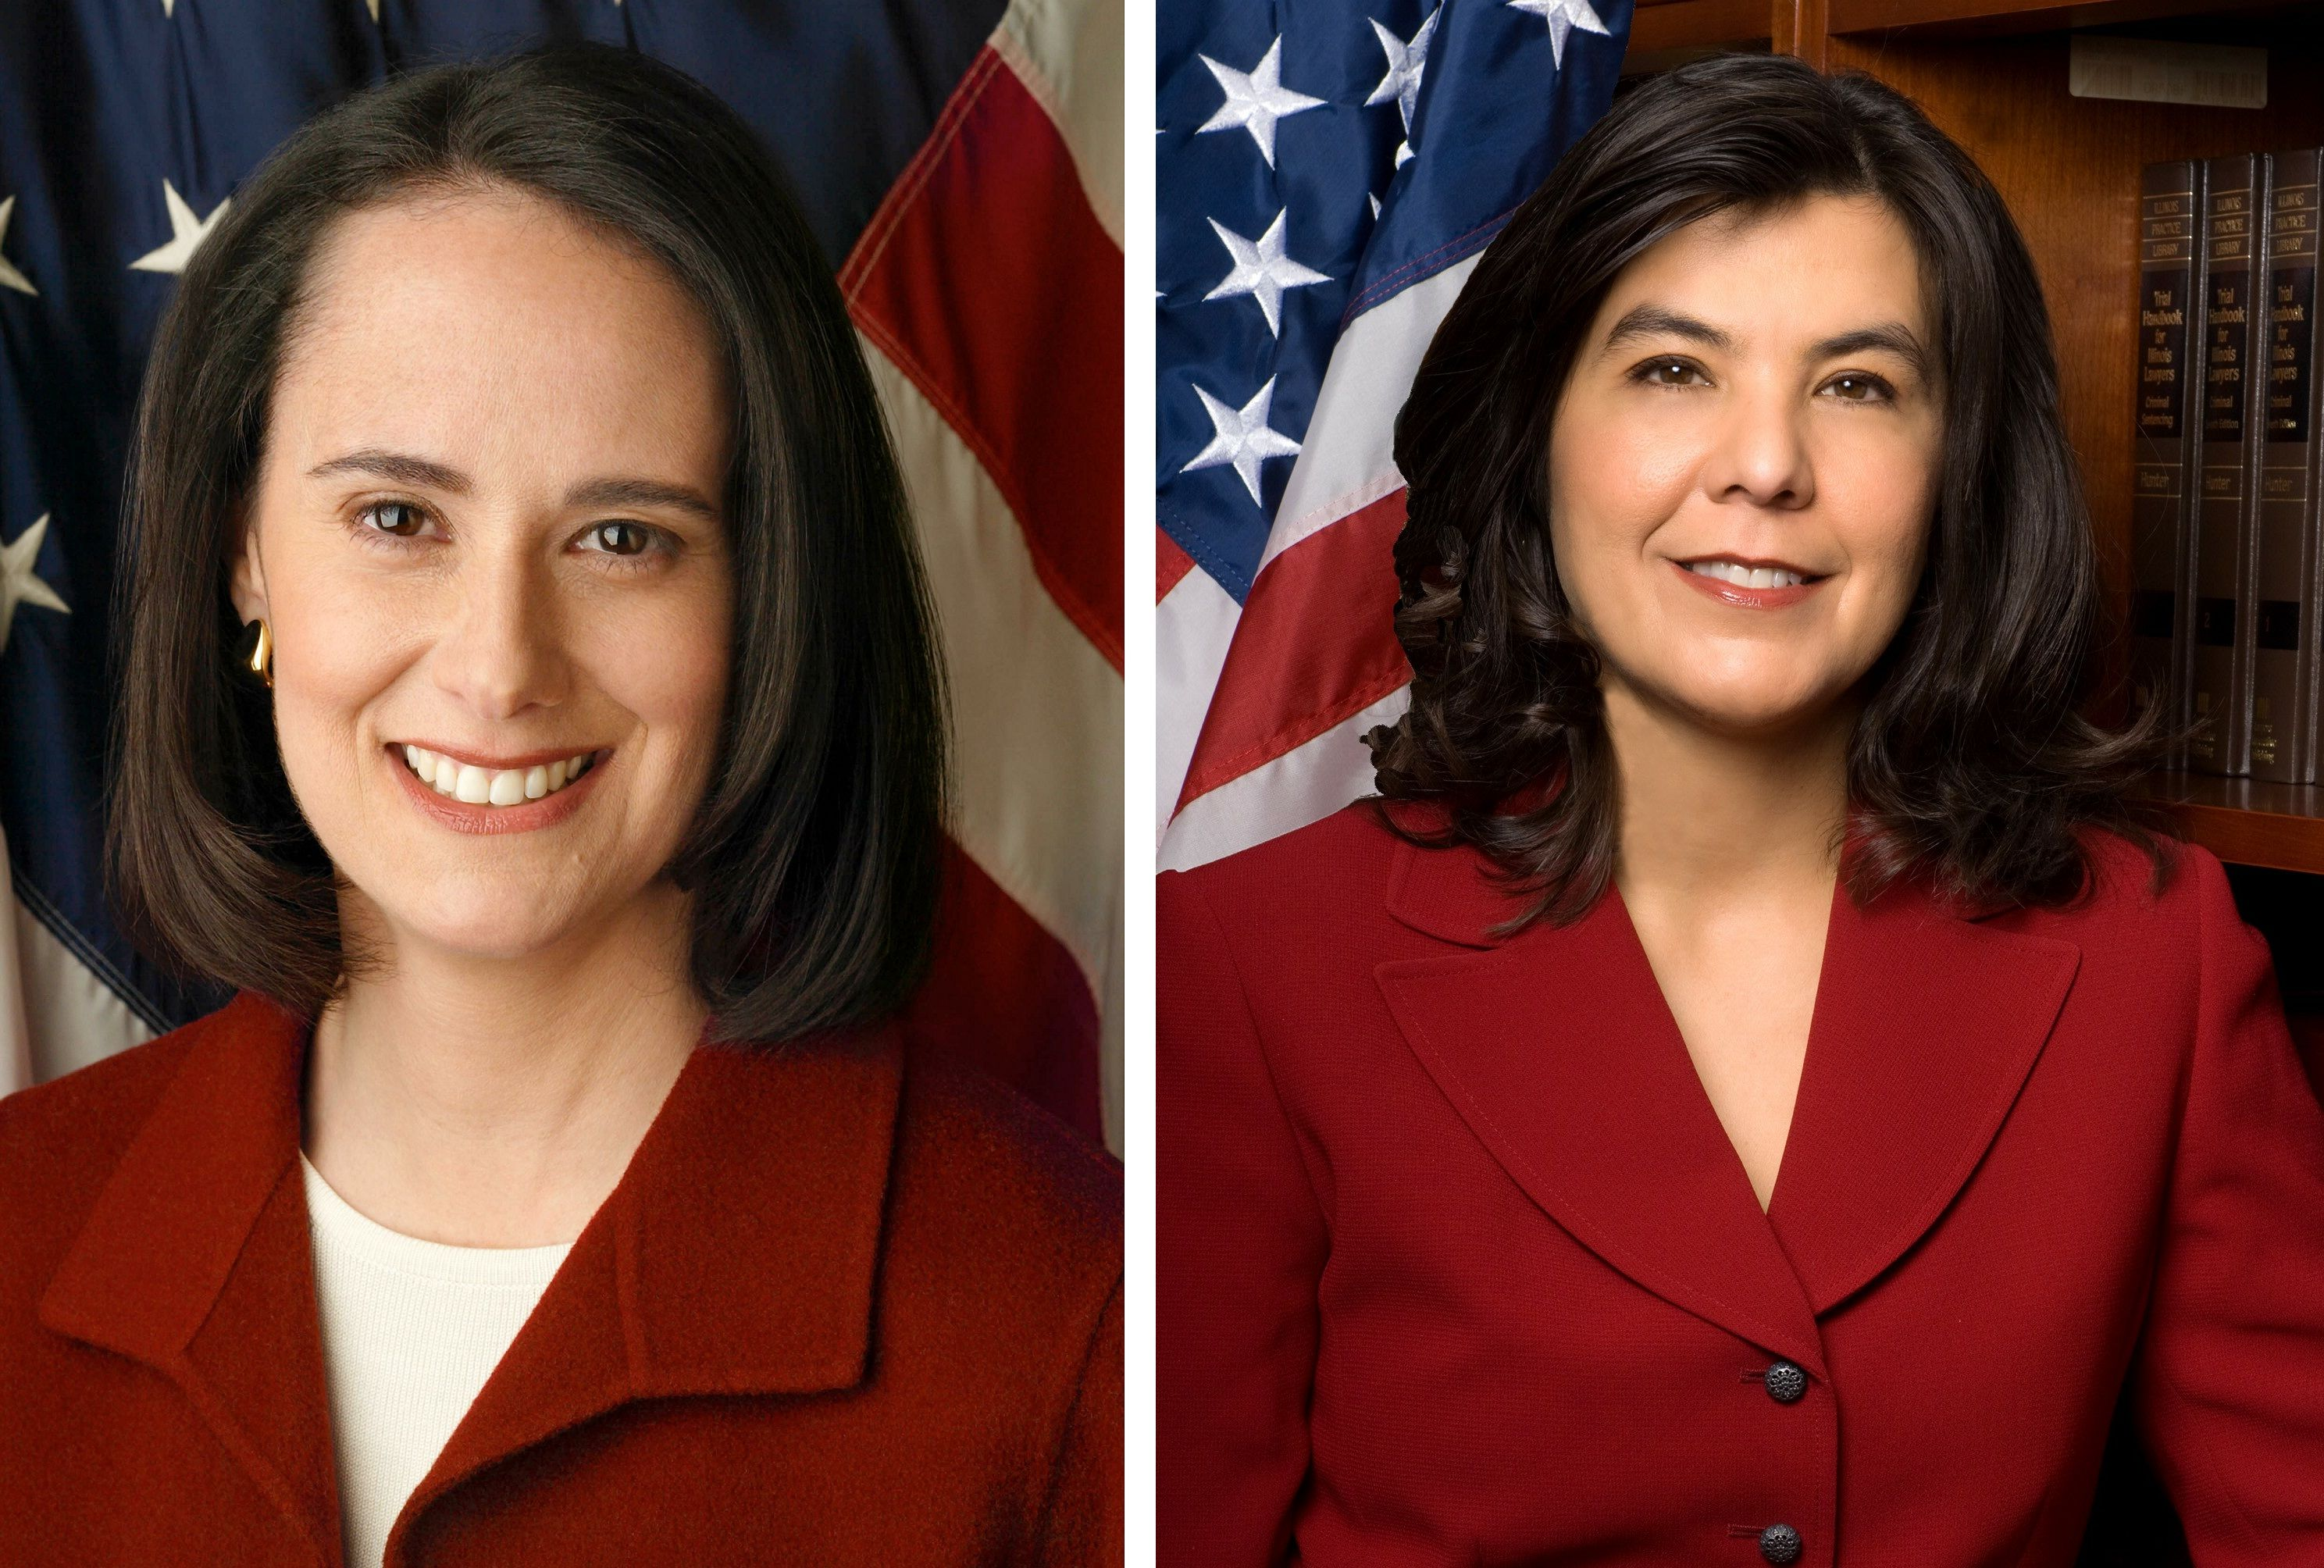 Illinois Attorney General Lisa Madigan and Cook County State's Attorney Anita Alvarez have refused to defend Illinois' 16-year-old ban same sex marriage ban saying it violates the state constitution's equal protection clause.